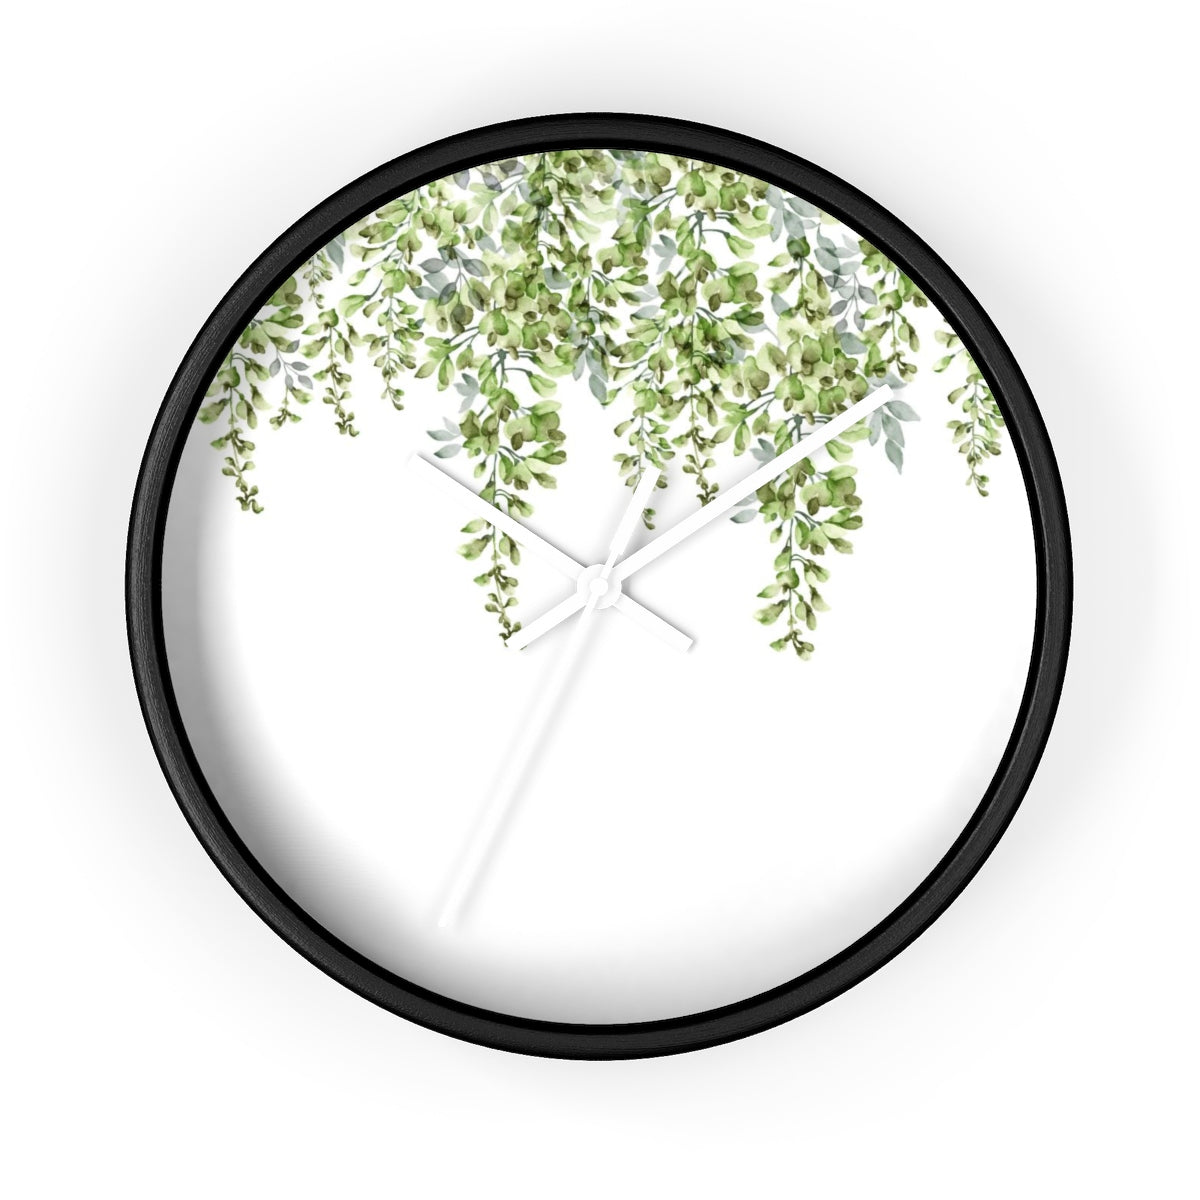 Round black, white and green wall clock